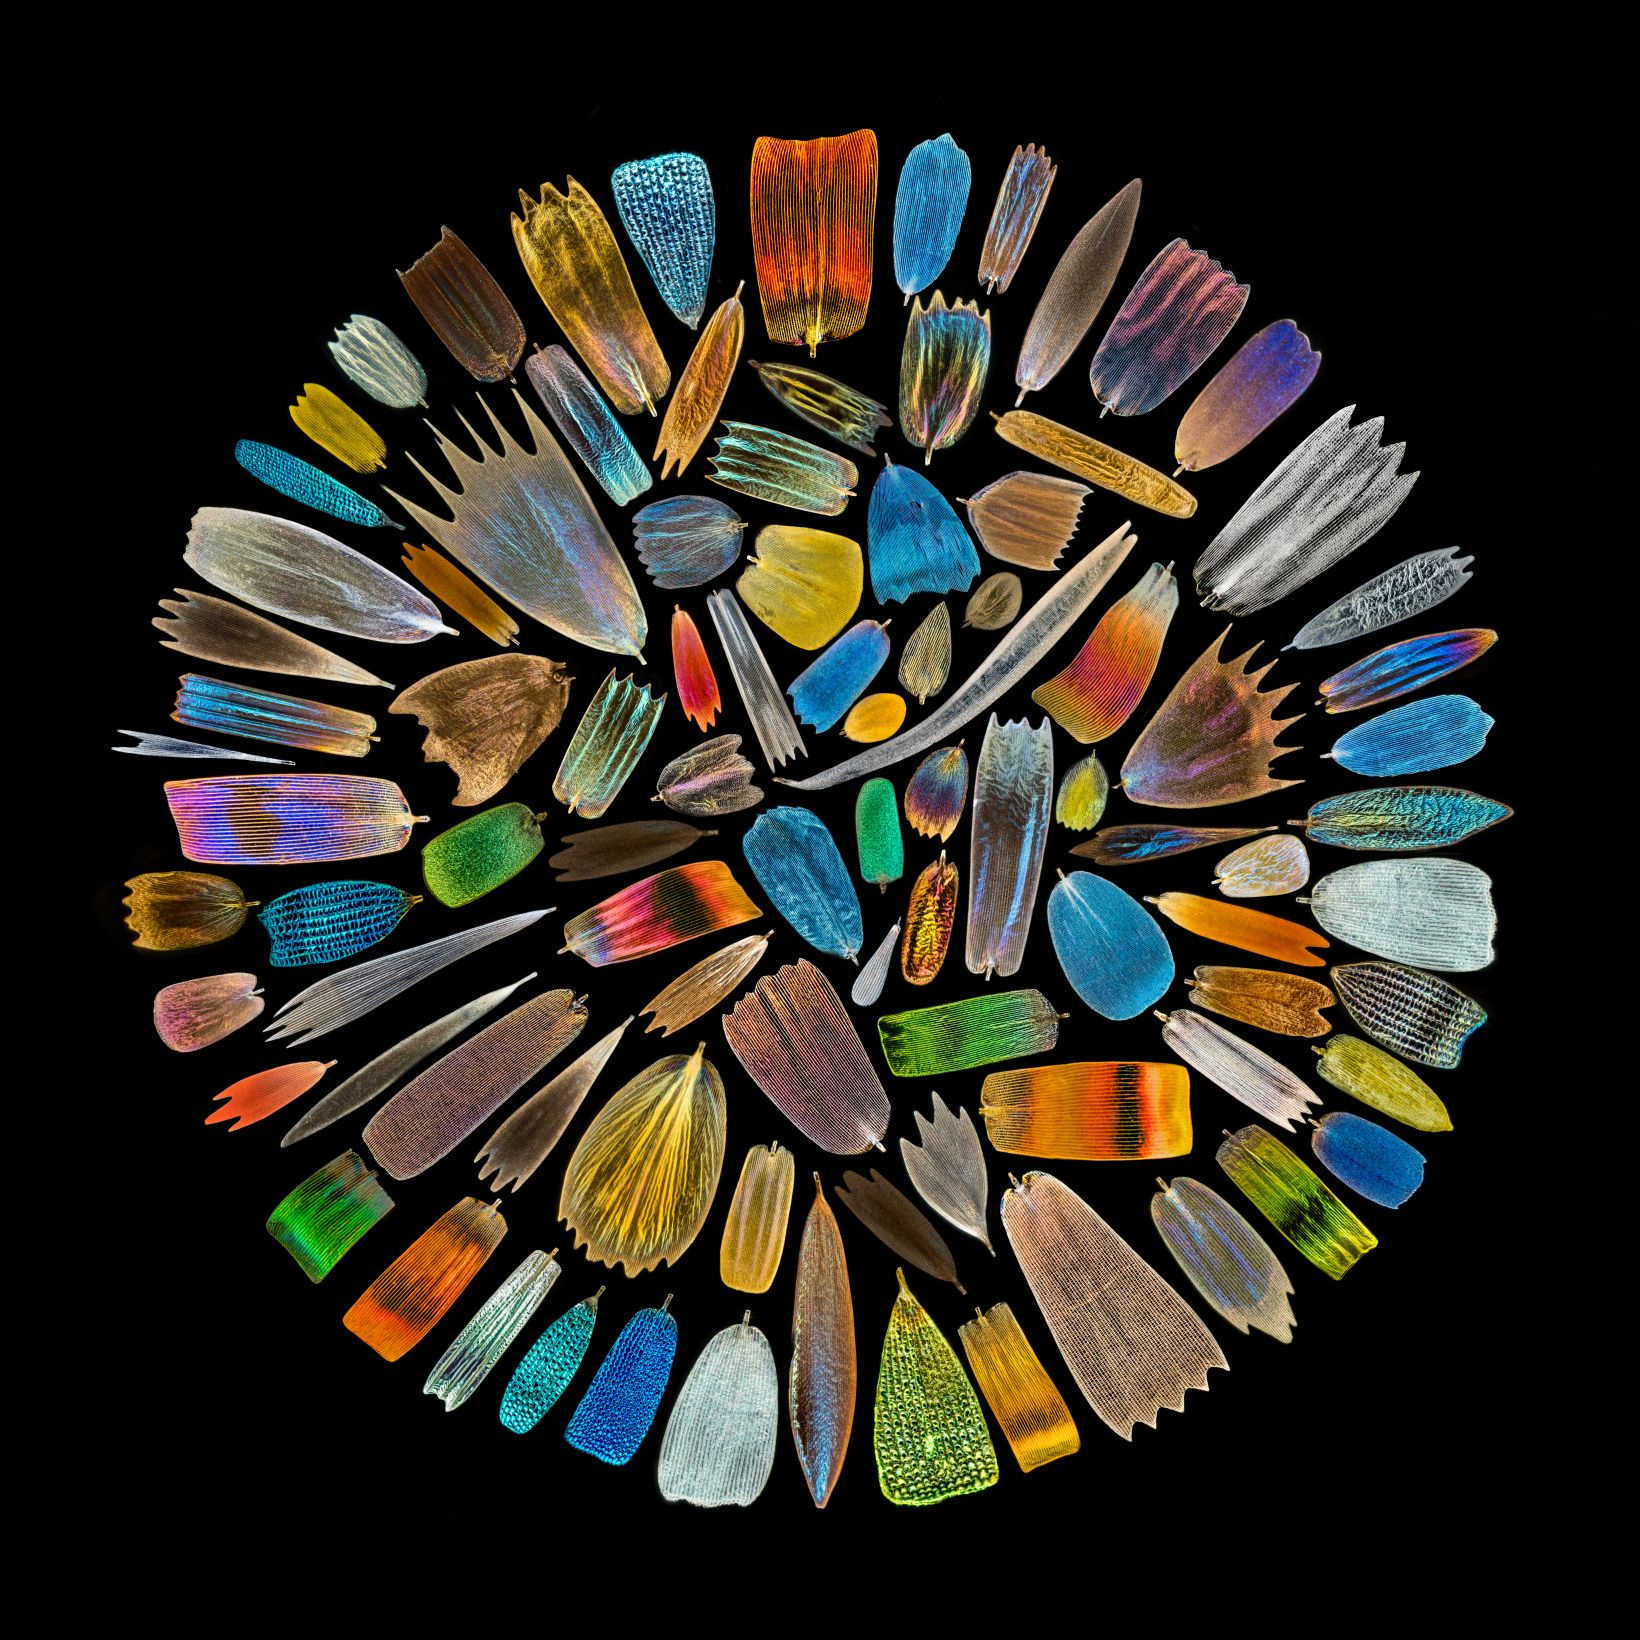 scales collected from different butterfly wings